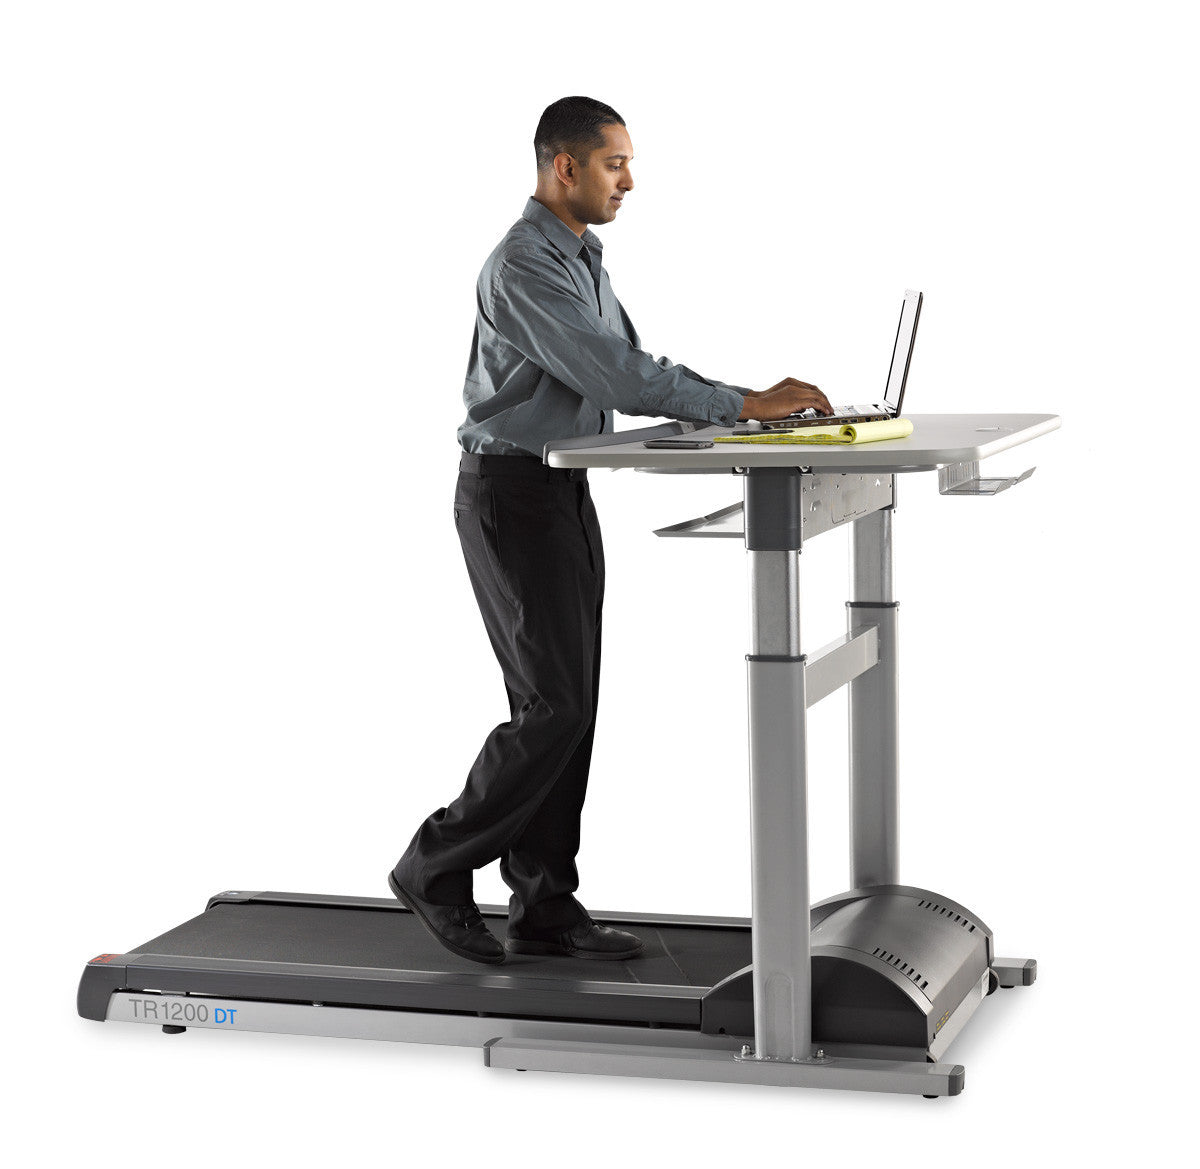 Premium Treadmill Desk Workstation with Automatic Height Adjustment by LifeSpan (TR1200DT7)